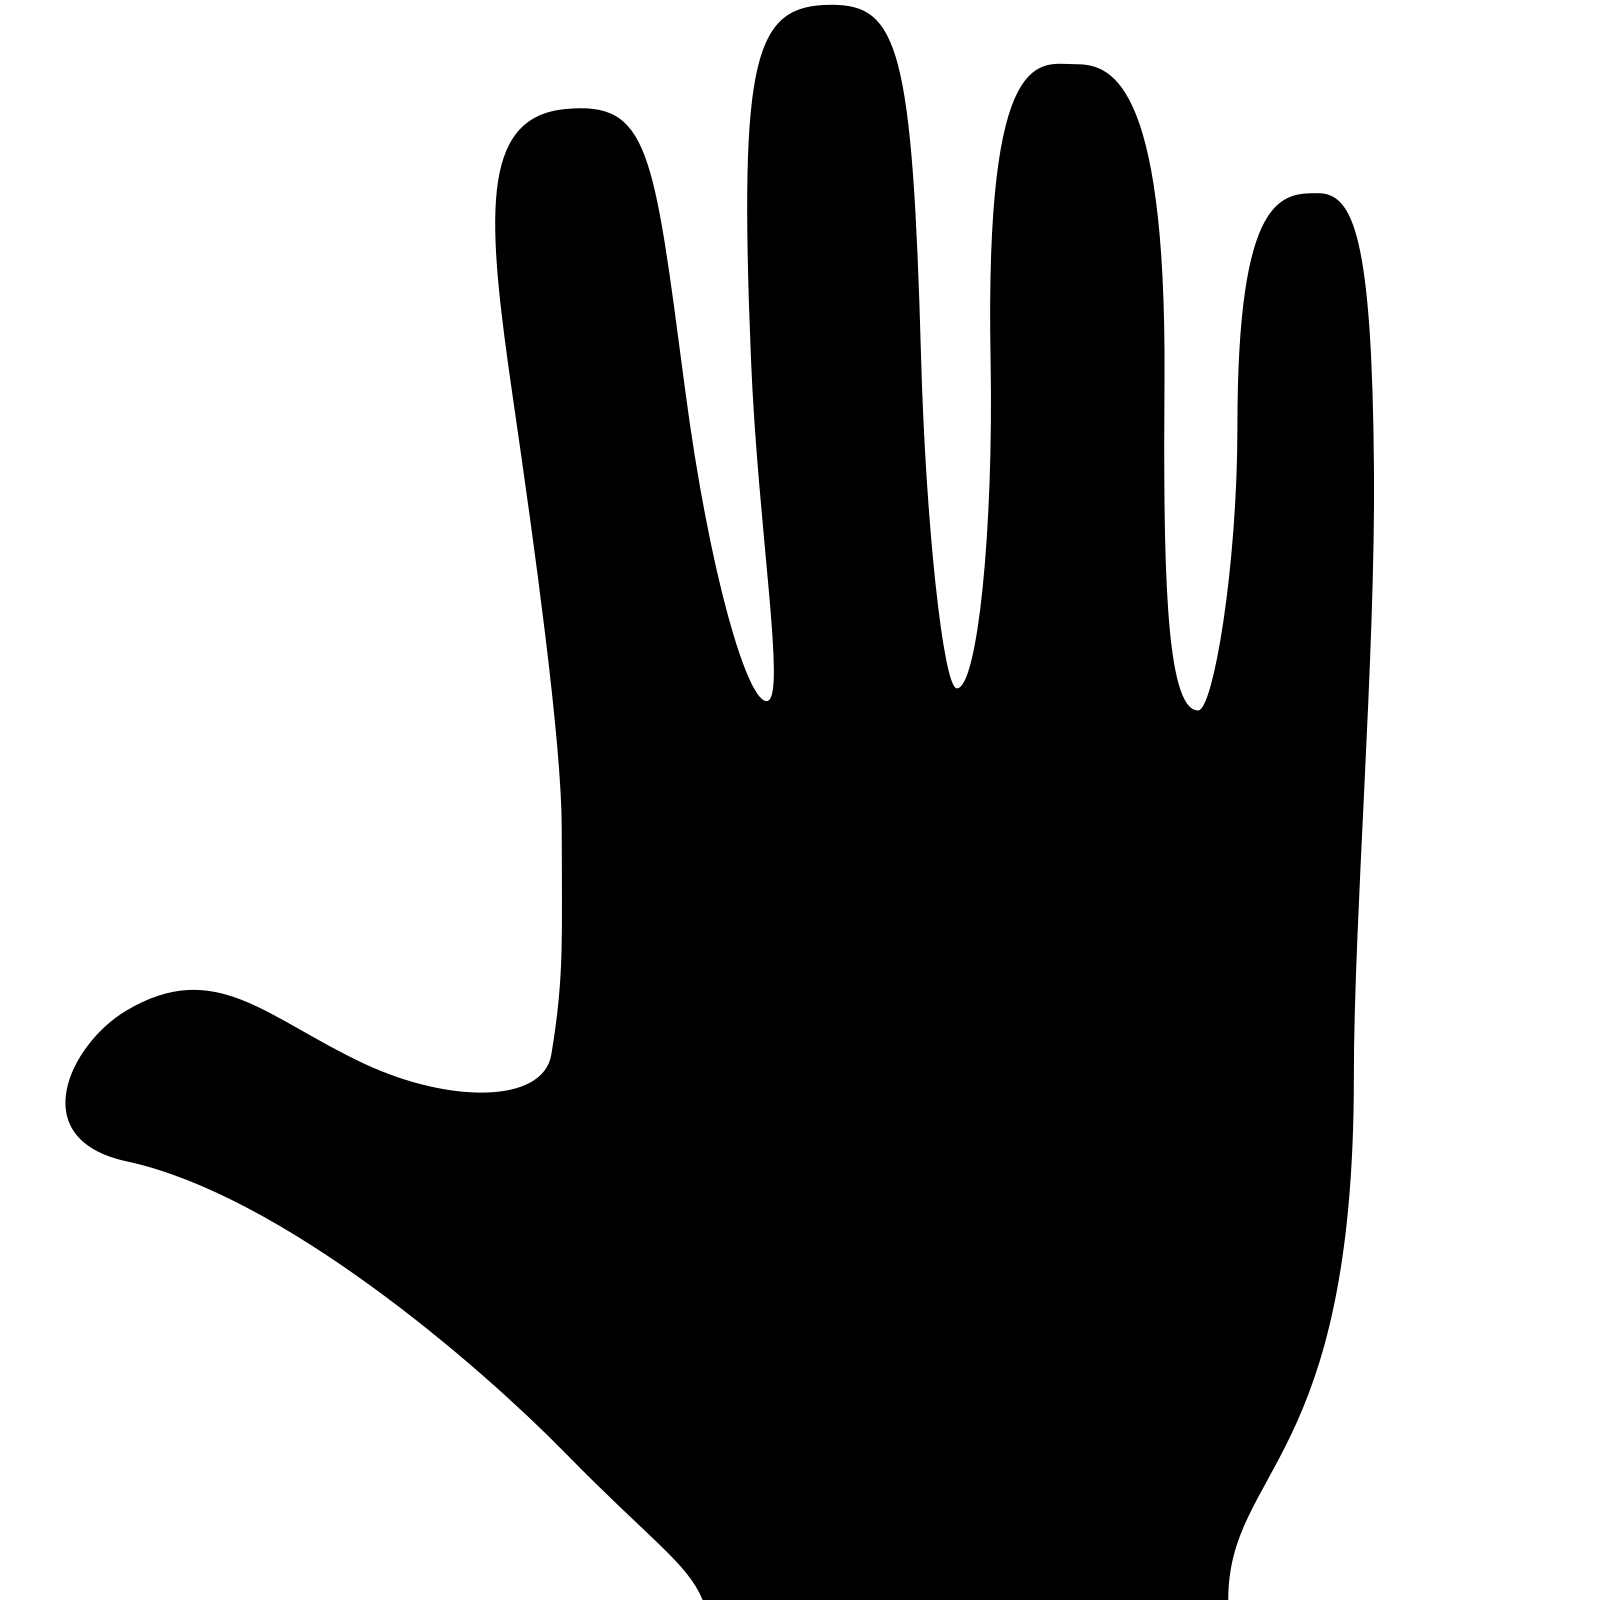 hand icon download png and vector #10611